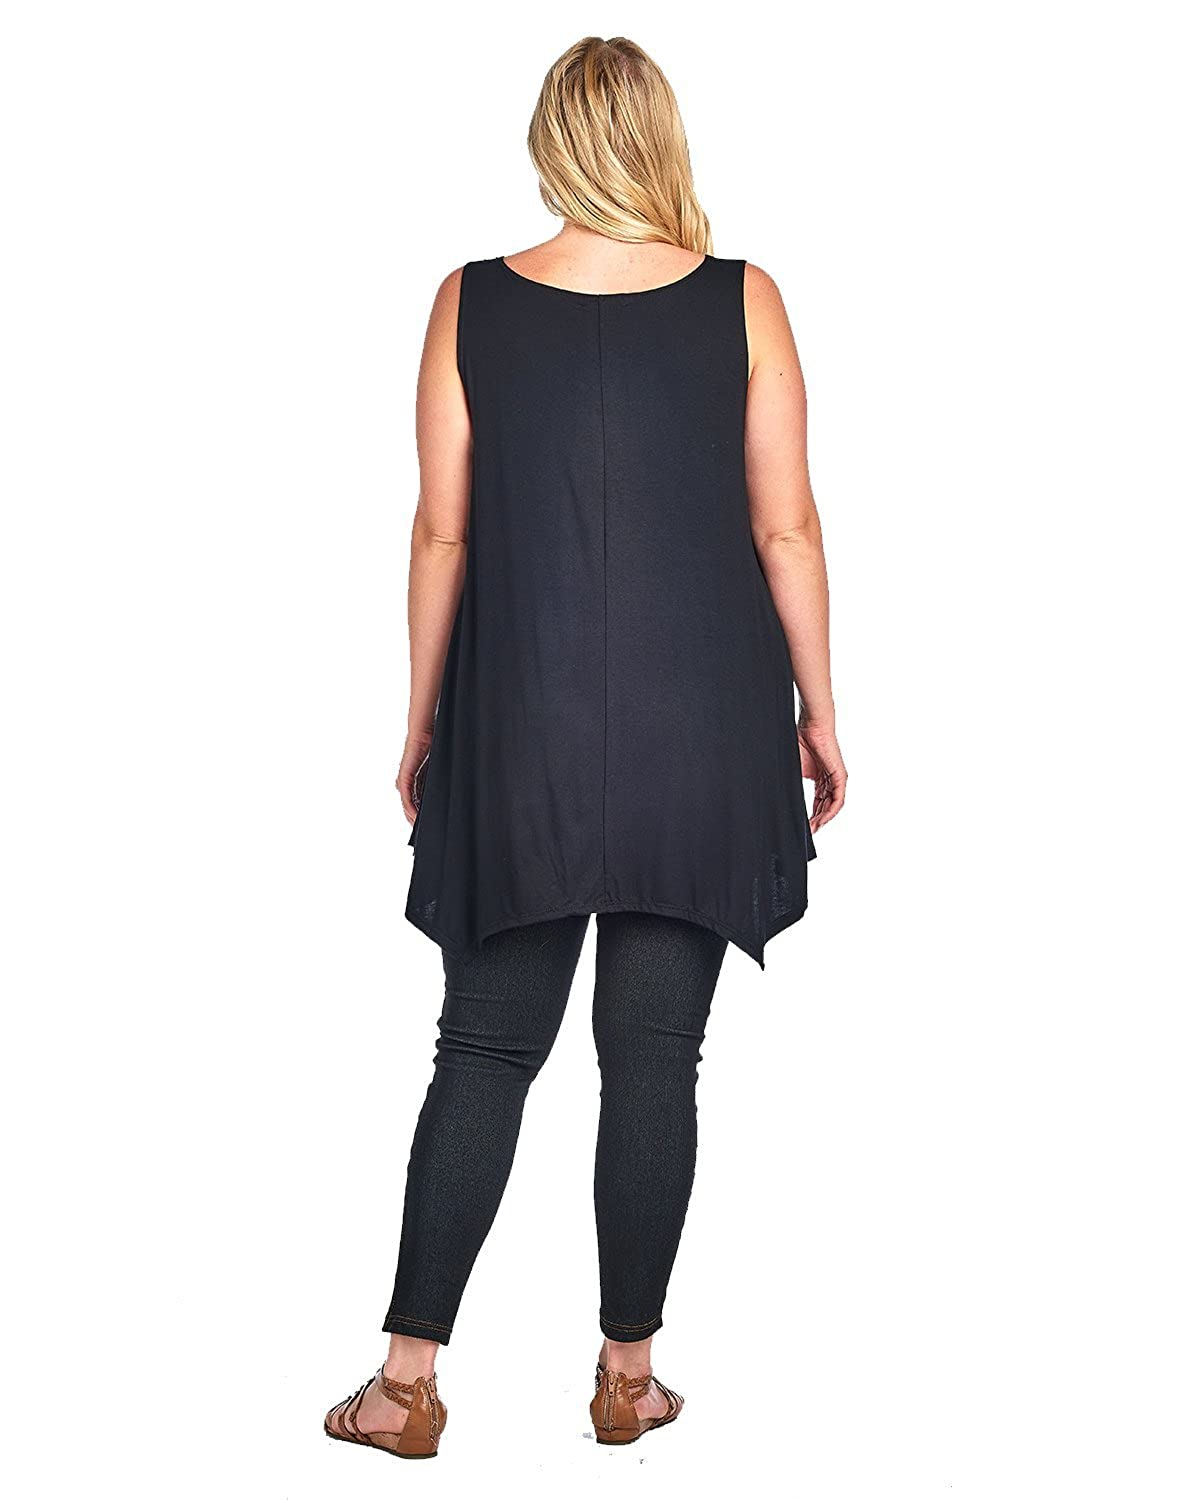 c45be36ba8a Amazon.com  Plus Size Curvy Womens Casual High Low Tank Top MADE IN USA  1X